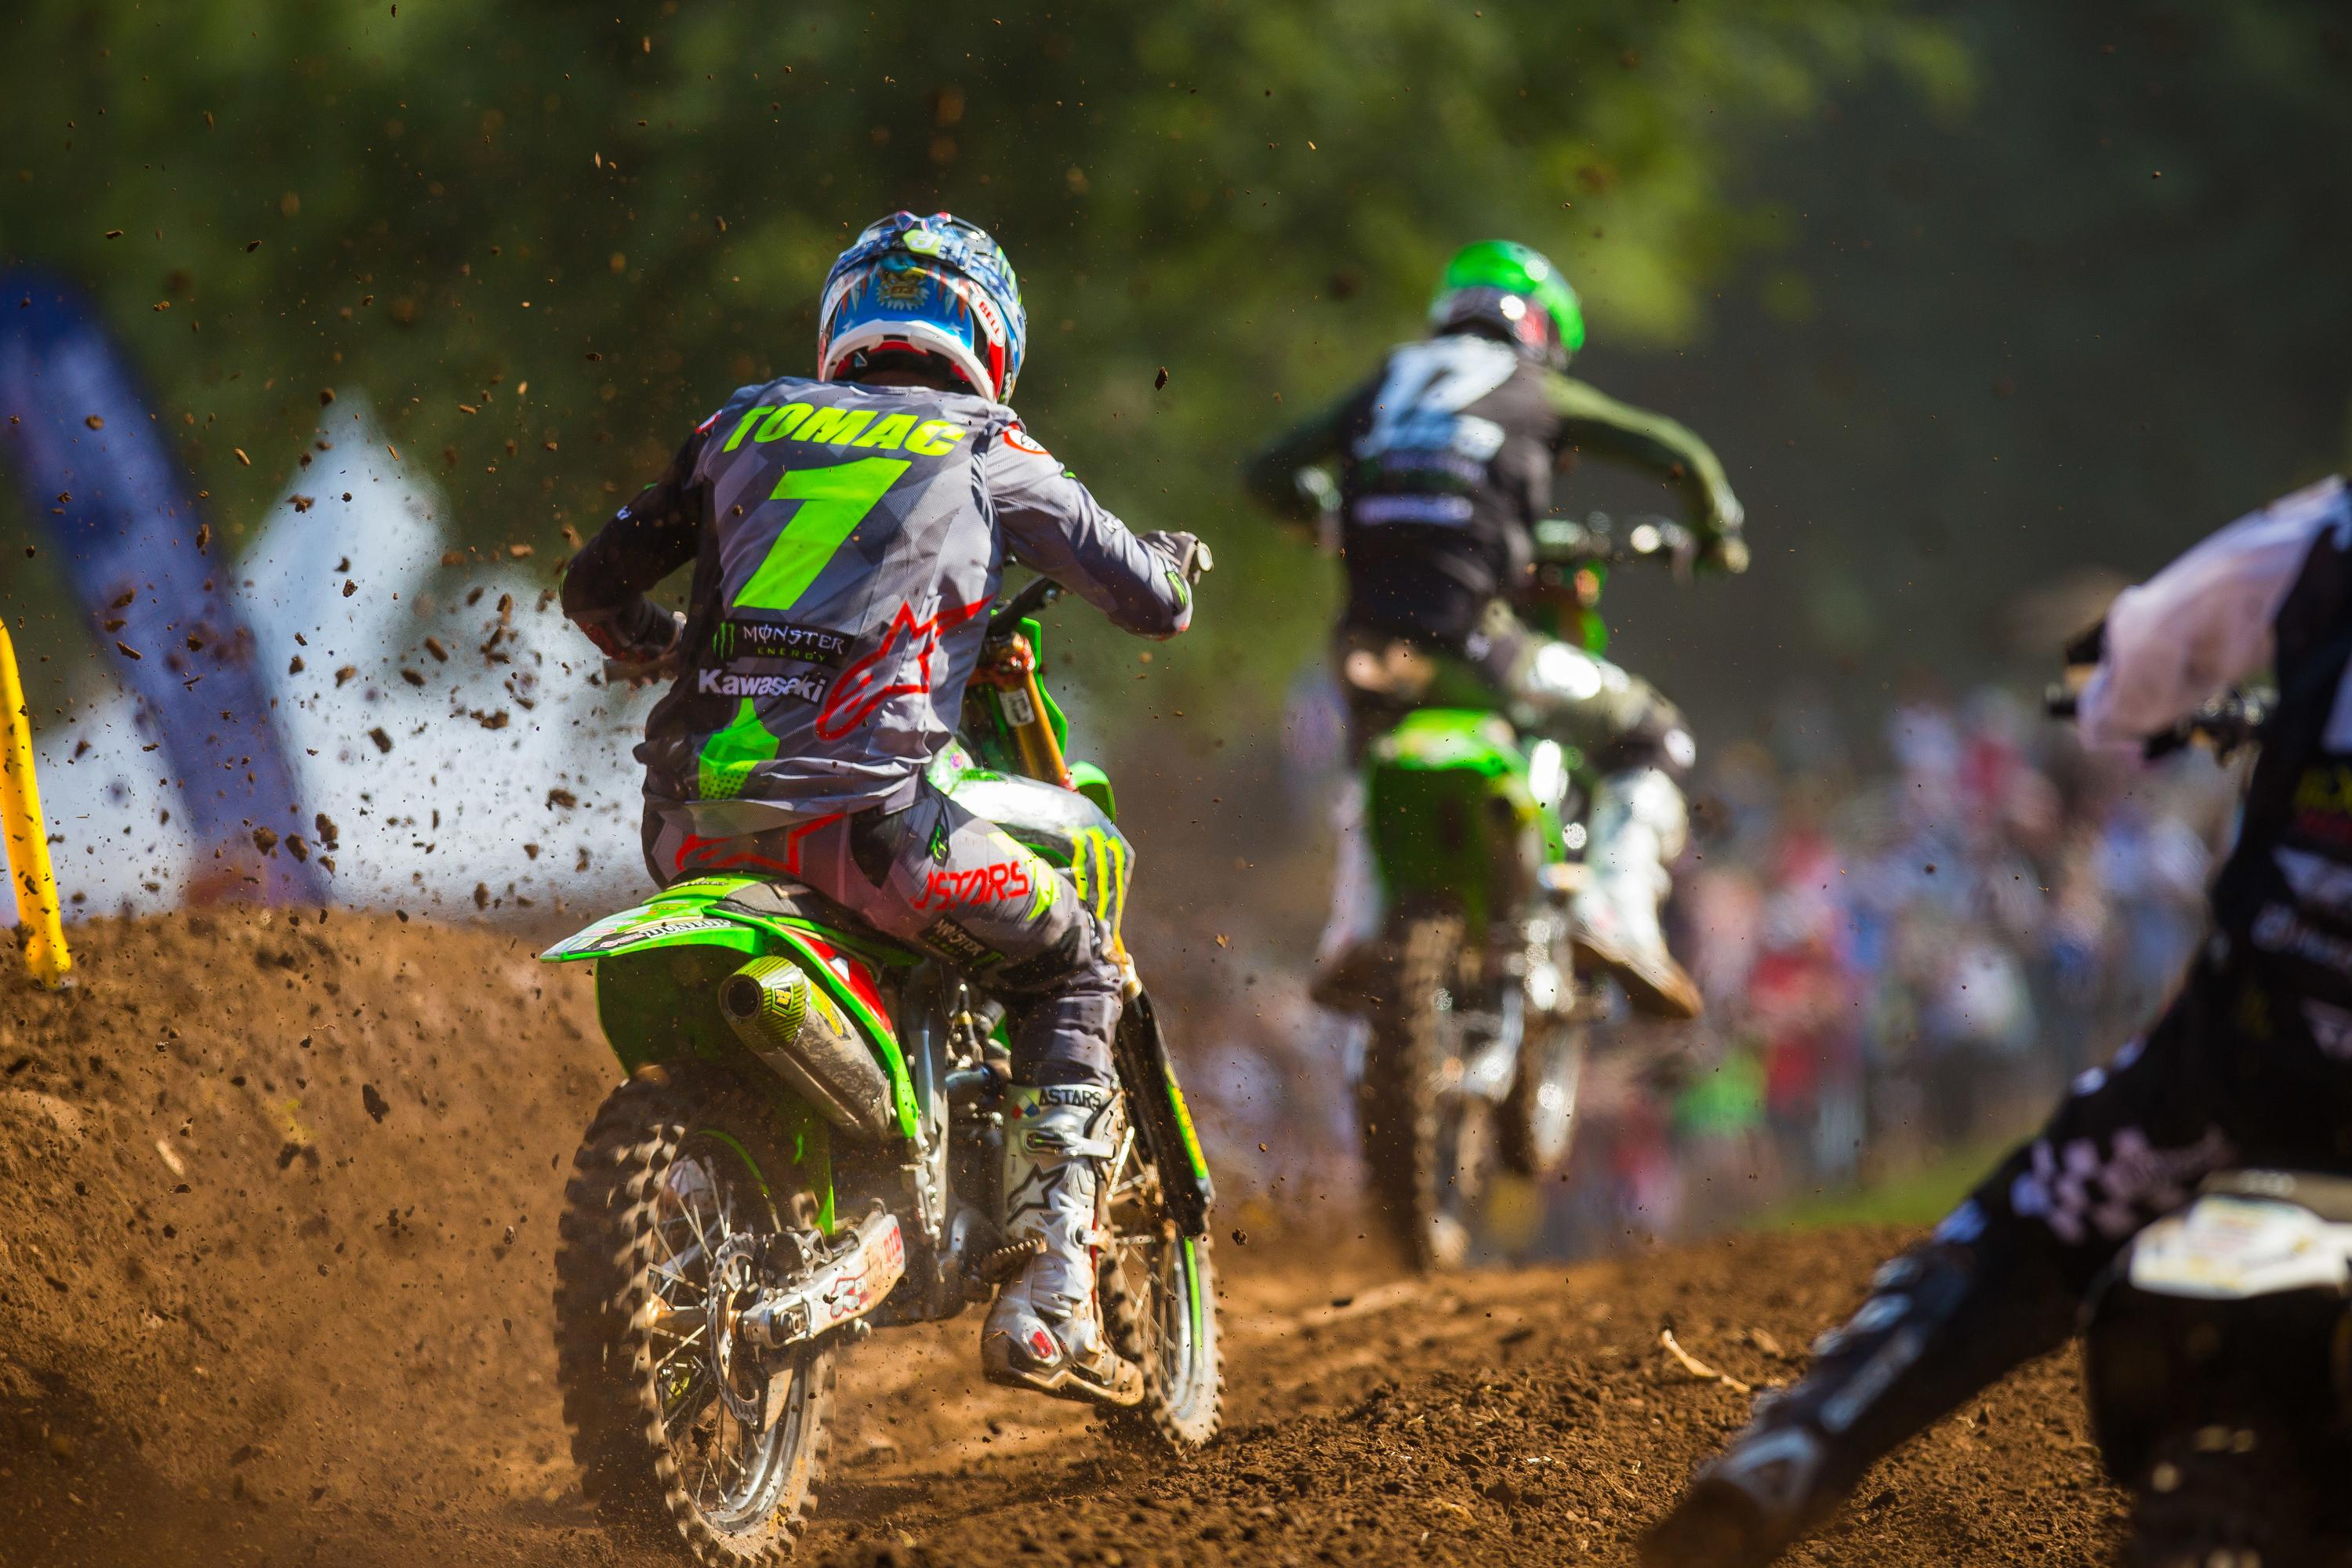 RLT Competition Bulletin 2020-17: Updates to Pro Motocross and GNCC Schedules